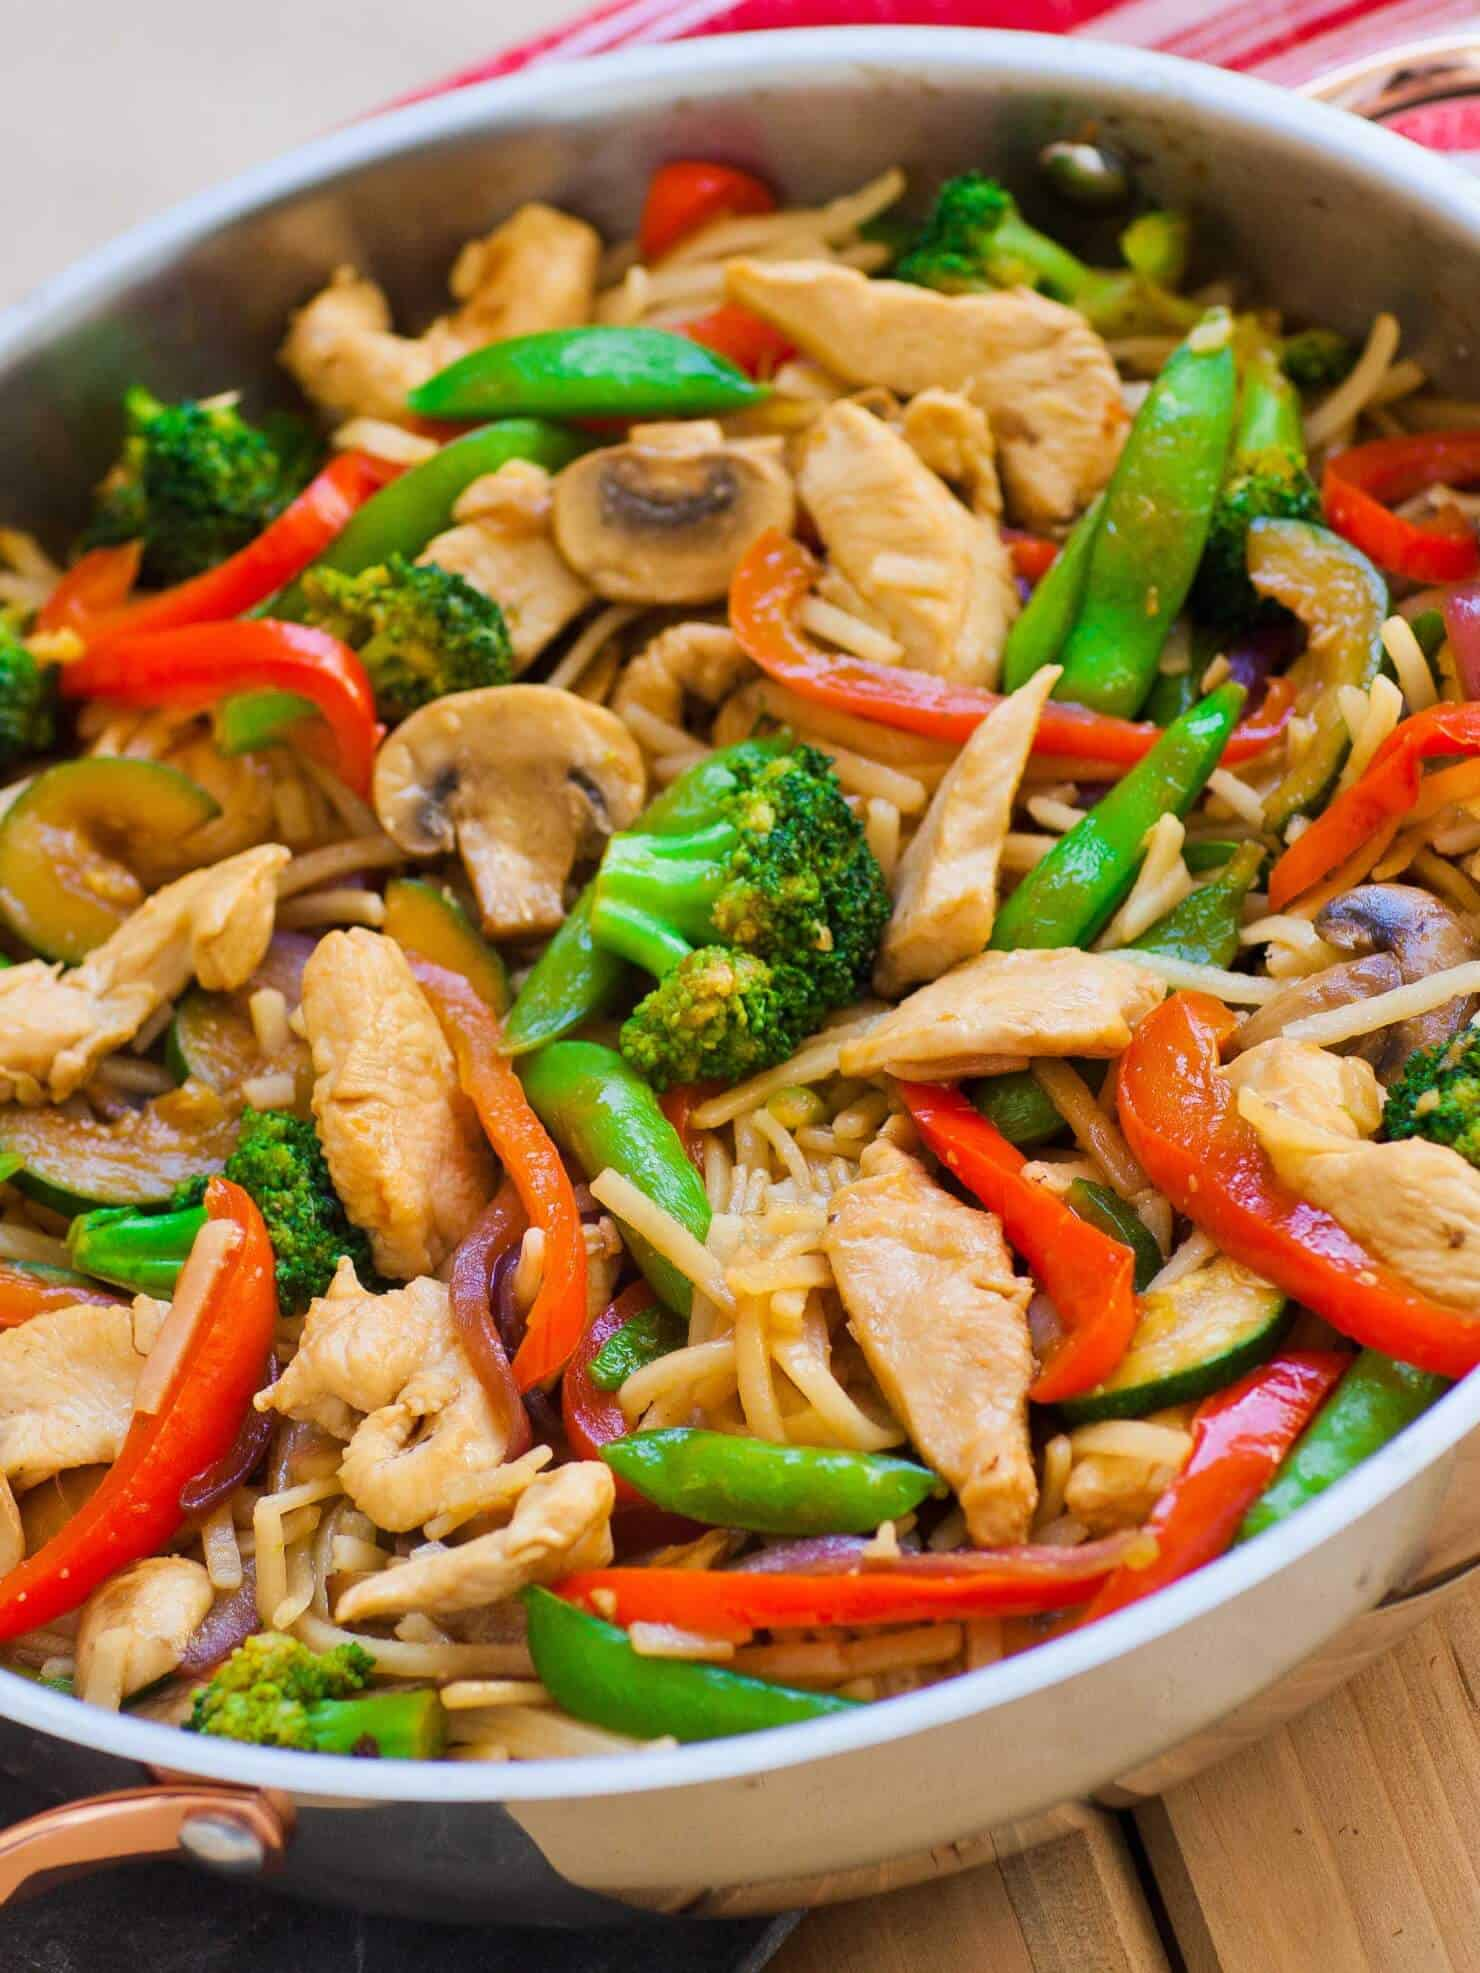 easy chicken teriyaki stir fry with vegetables and noodles